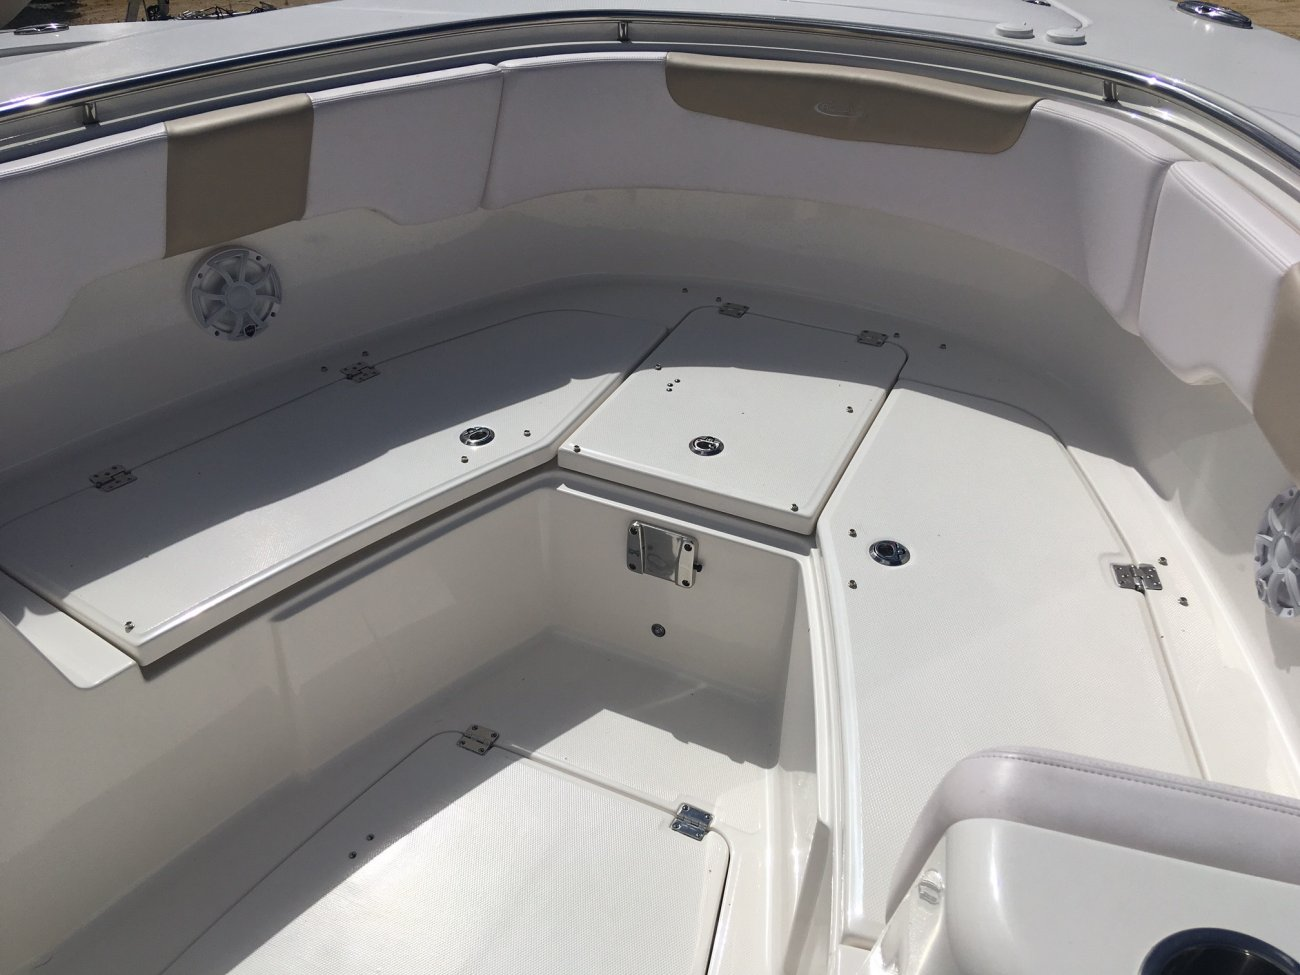 A R 302 is a Power and could be classed as a Center Console, Fish and Ski, Saltwater Fishing,  or, just an overall Great Boat!